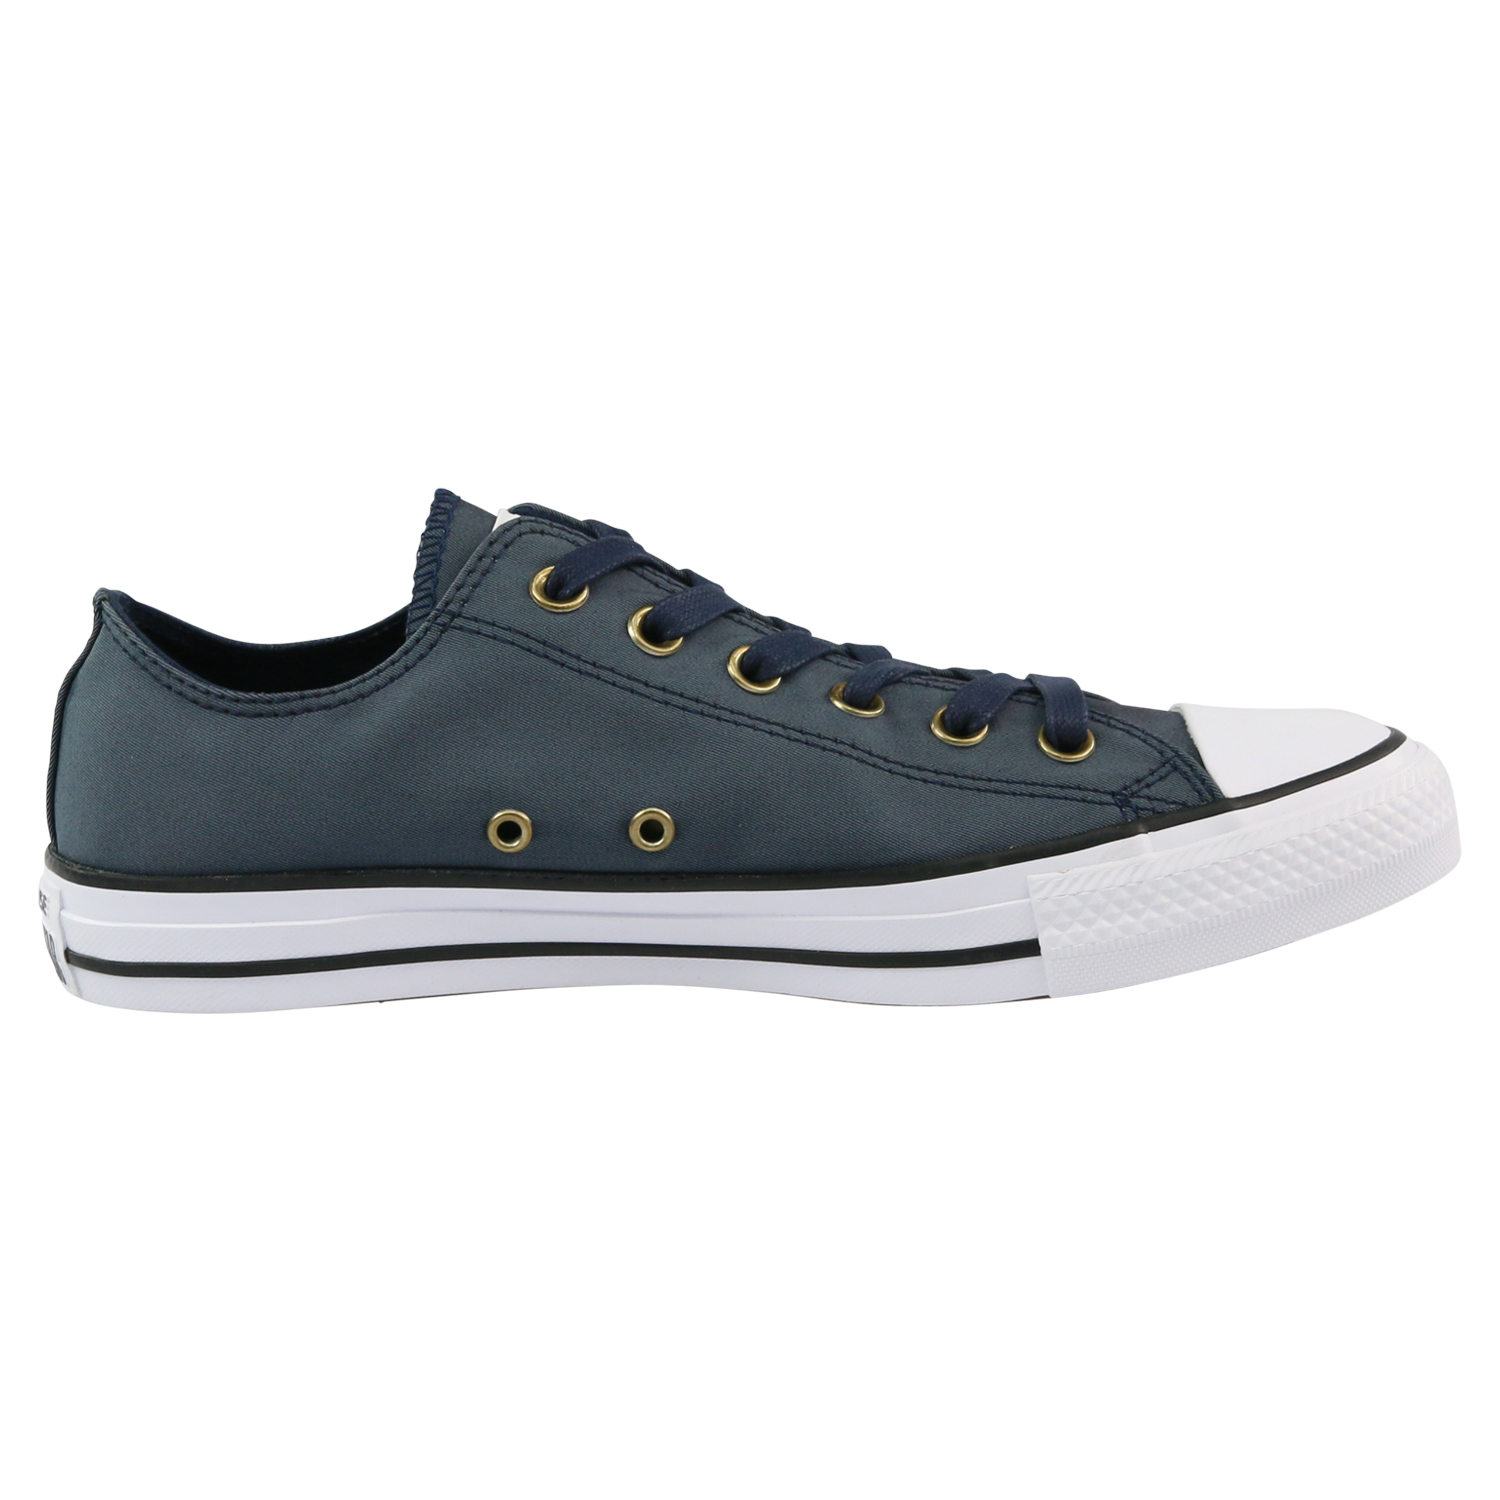 converse chuck taylor all star ox schuhe turnschuhe. Black Bedroom Furniture Sets. Home Design Ideas